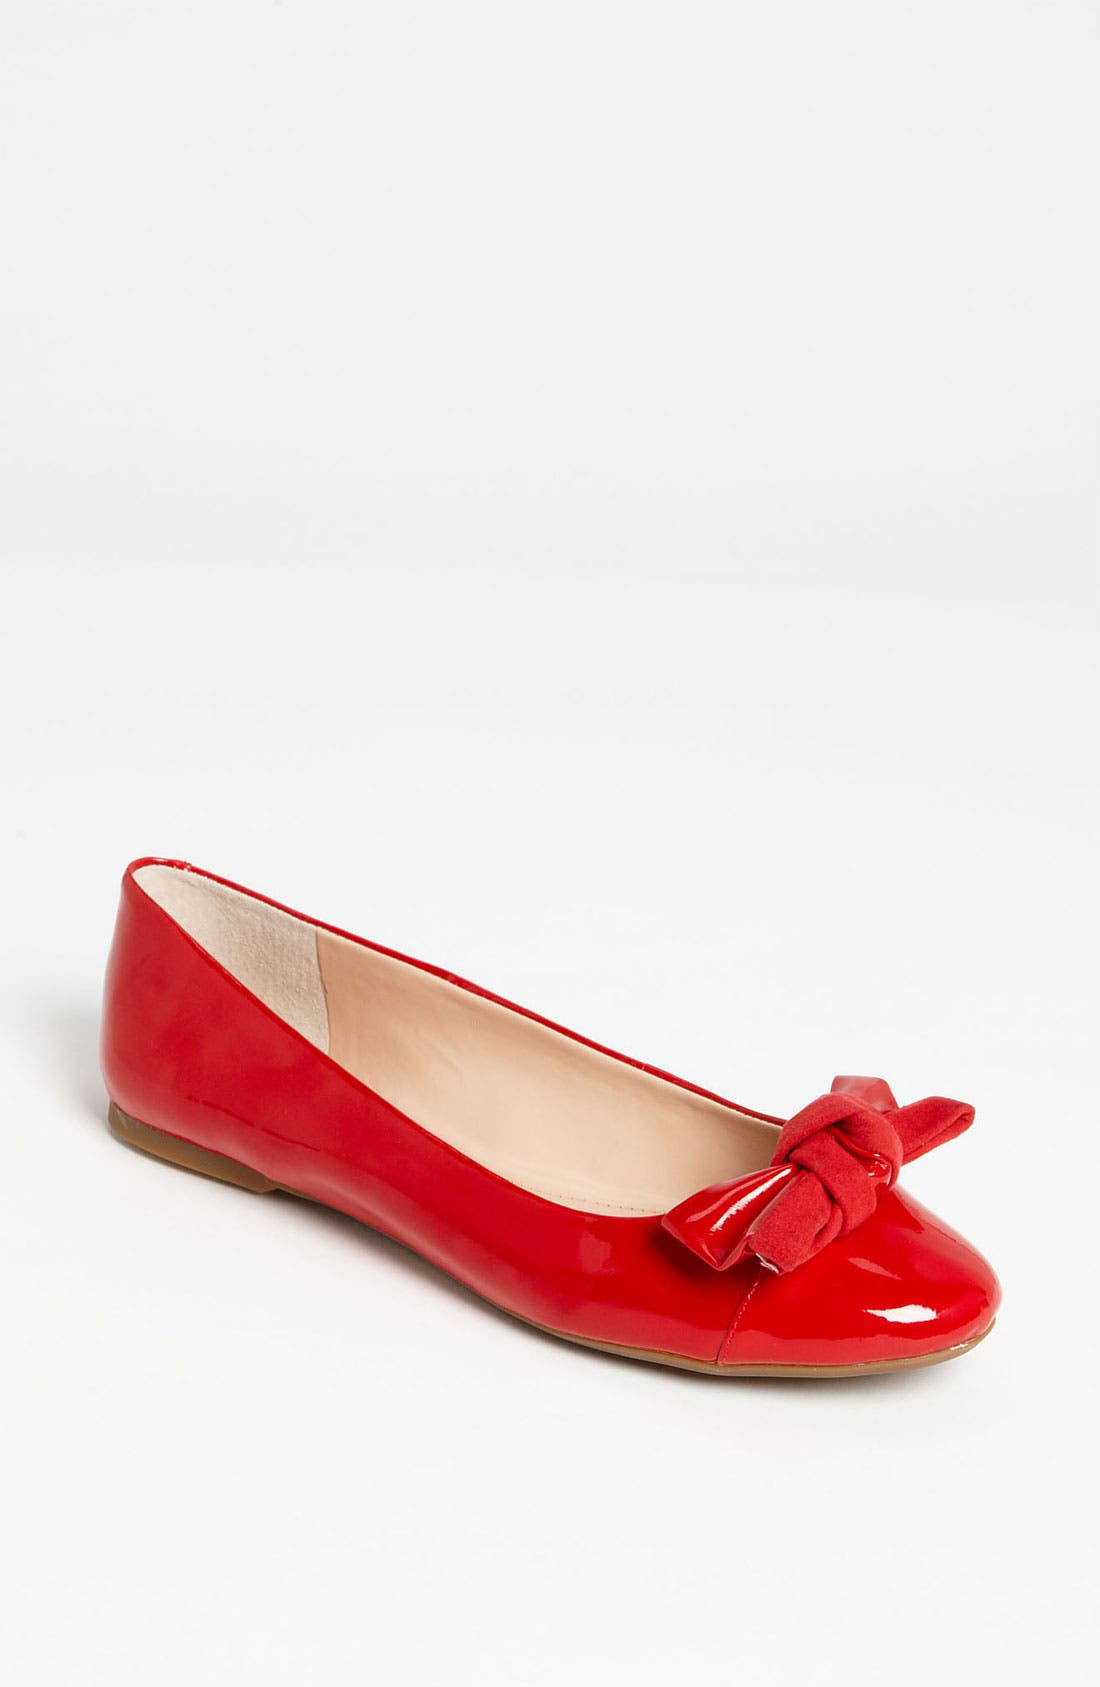 Alternate Image 1 Selected - Sole Society 'Callie' Flat